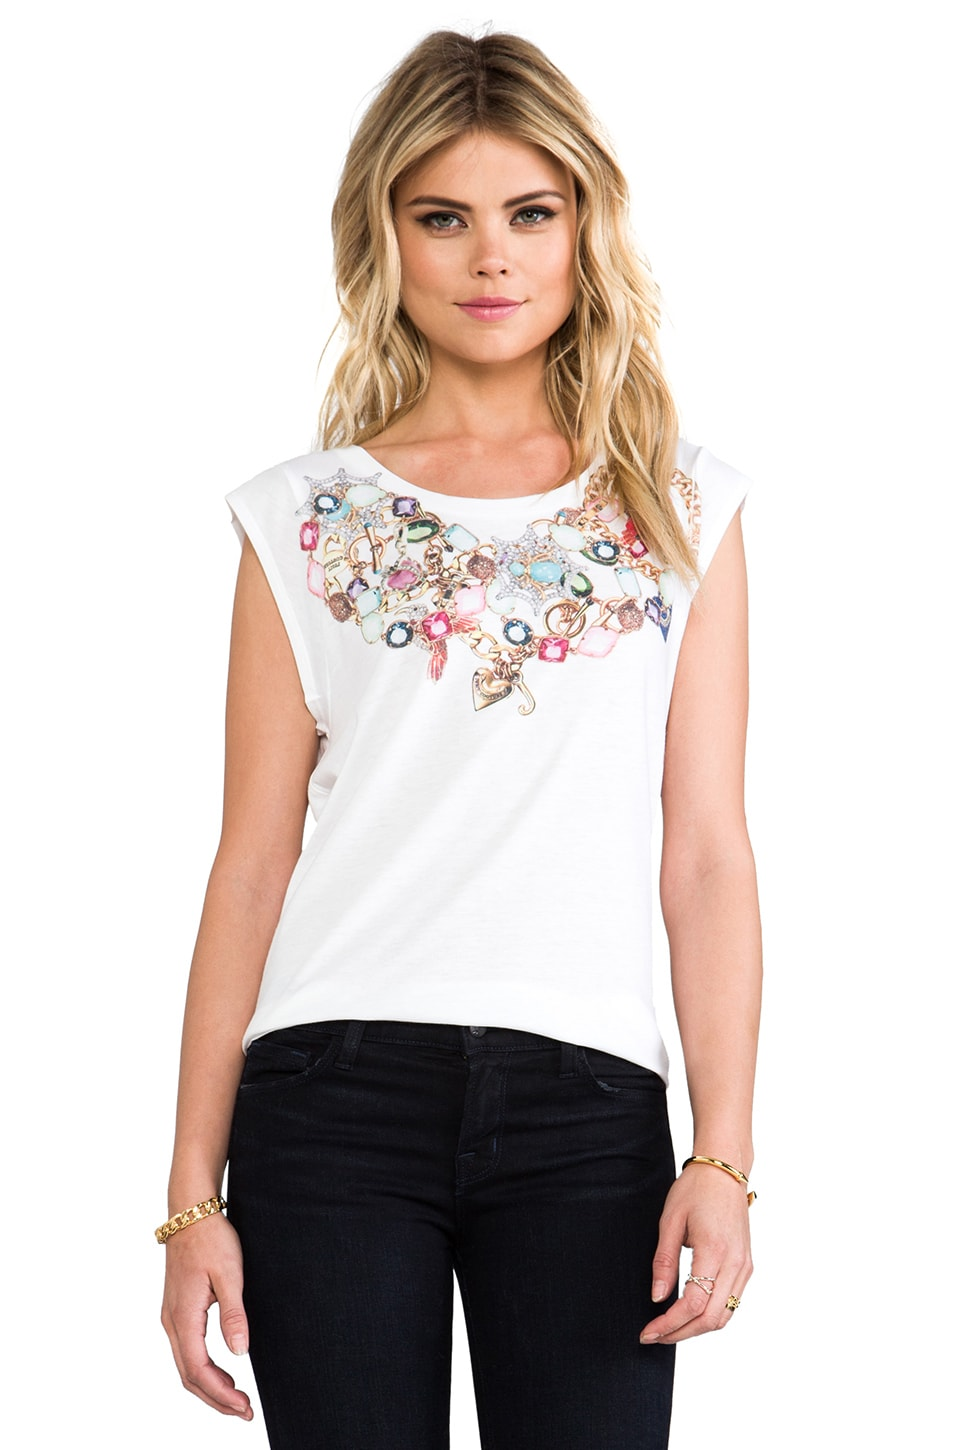 Juicy Couture Jewel Print in White